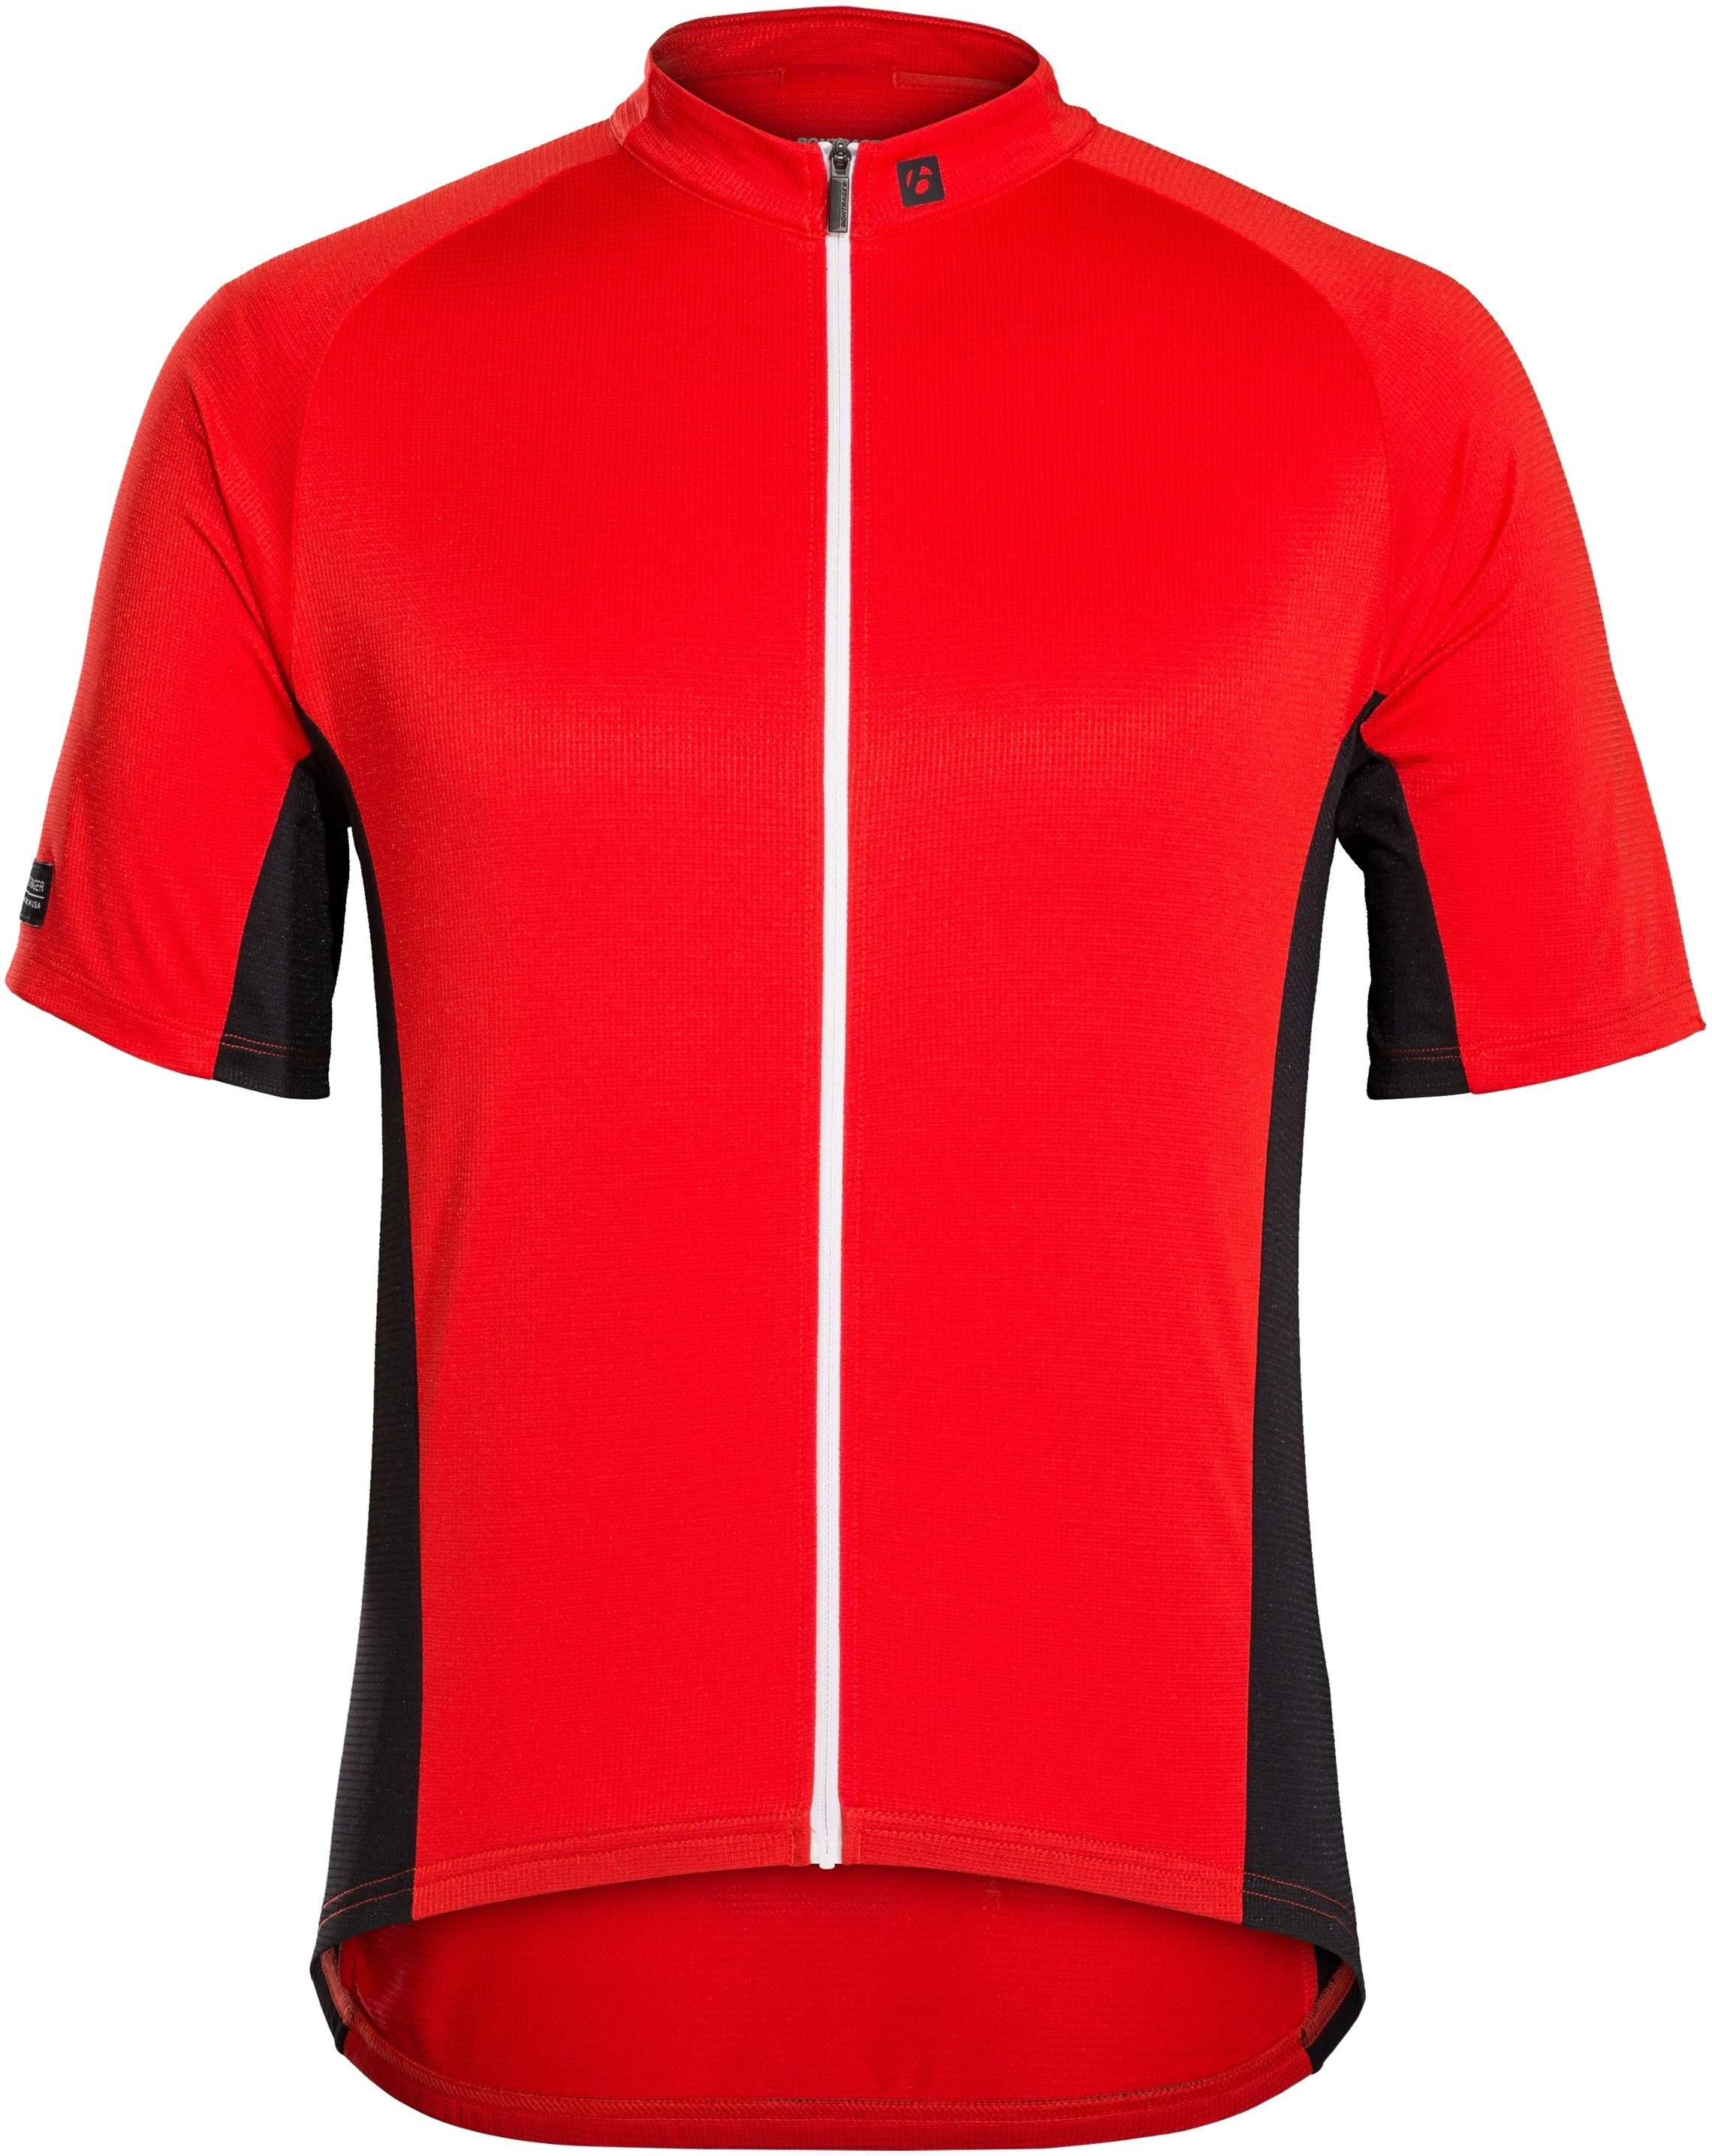 Bontrager Solstice Jersey Visibility Yellow | Jerseys